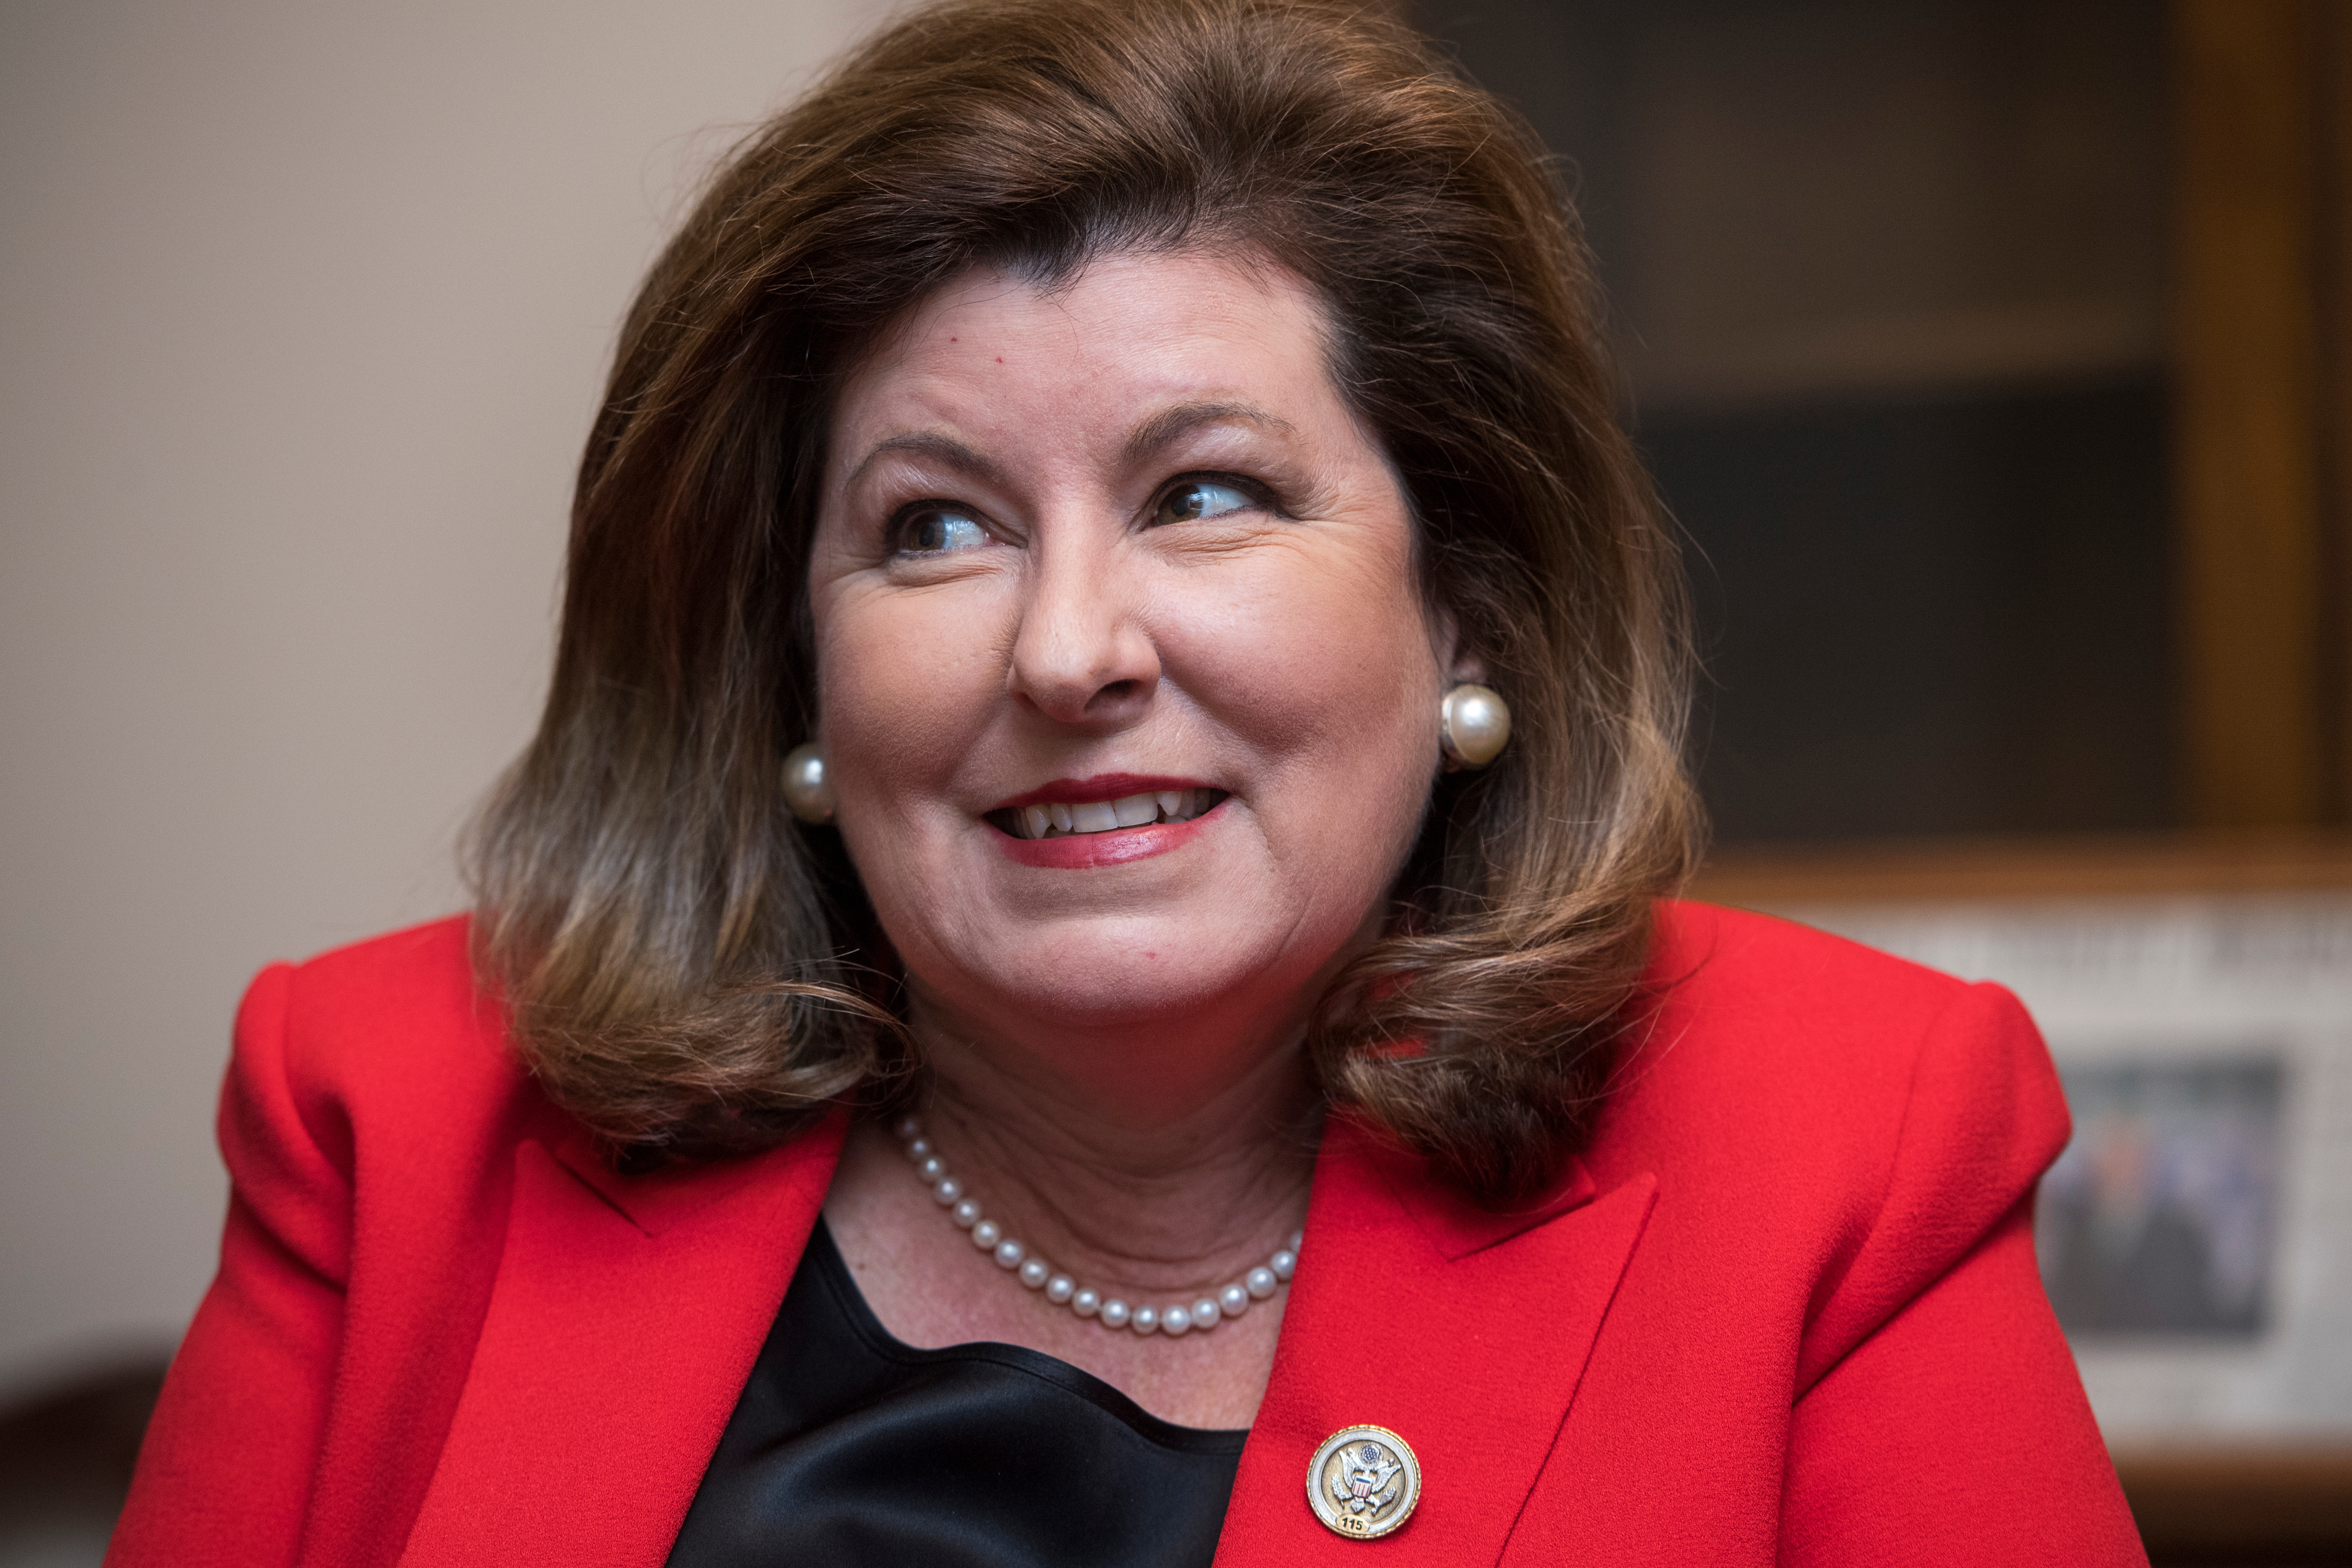 UNITED STATES - DECEMBER 11: Rep. Karen Handel, R-Ga., is interviewed in her Longworth Building office on December 11, 2017. (Photo By Tom Williams/CQ Roll Call)